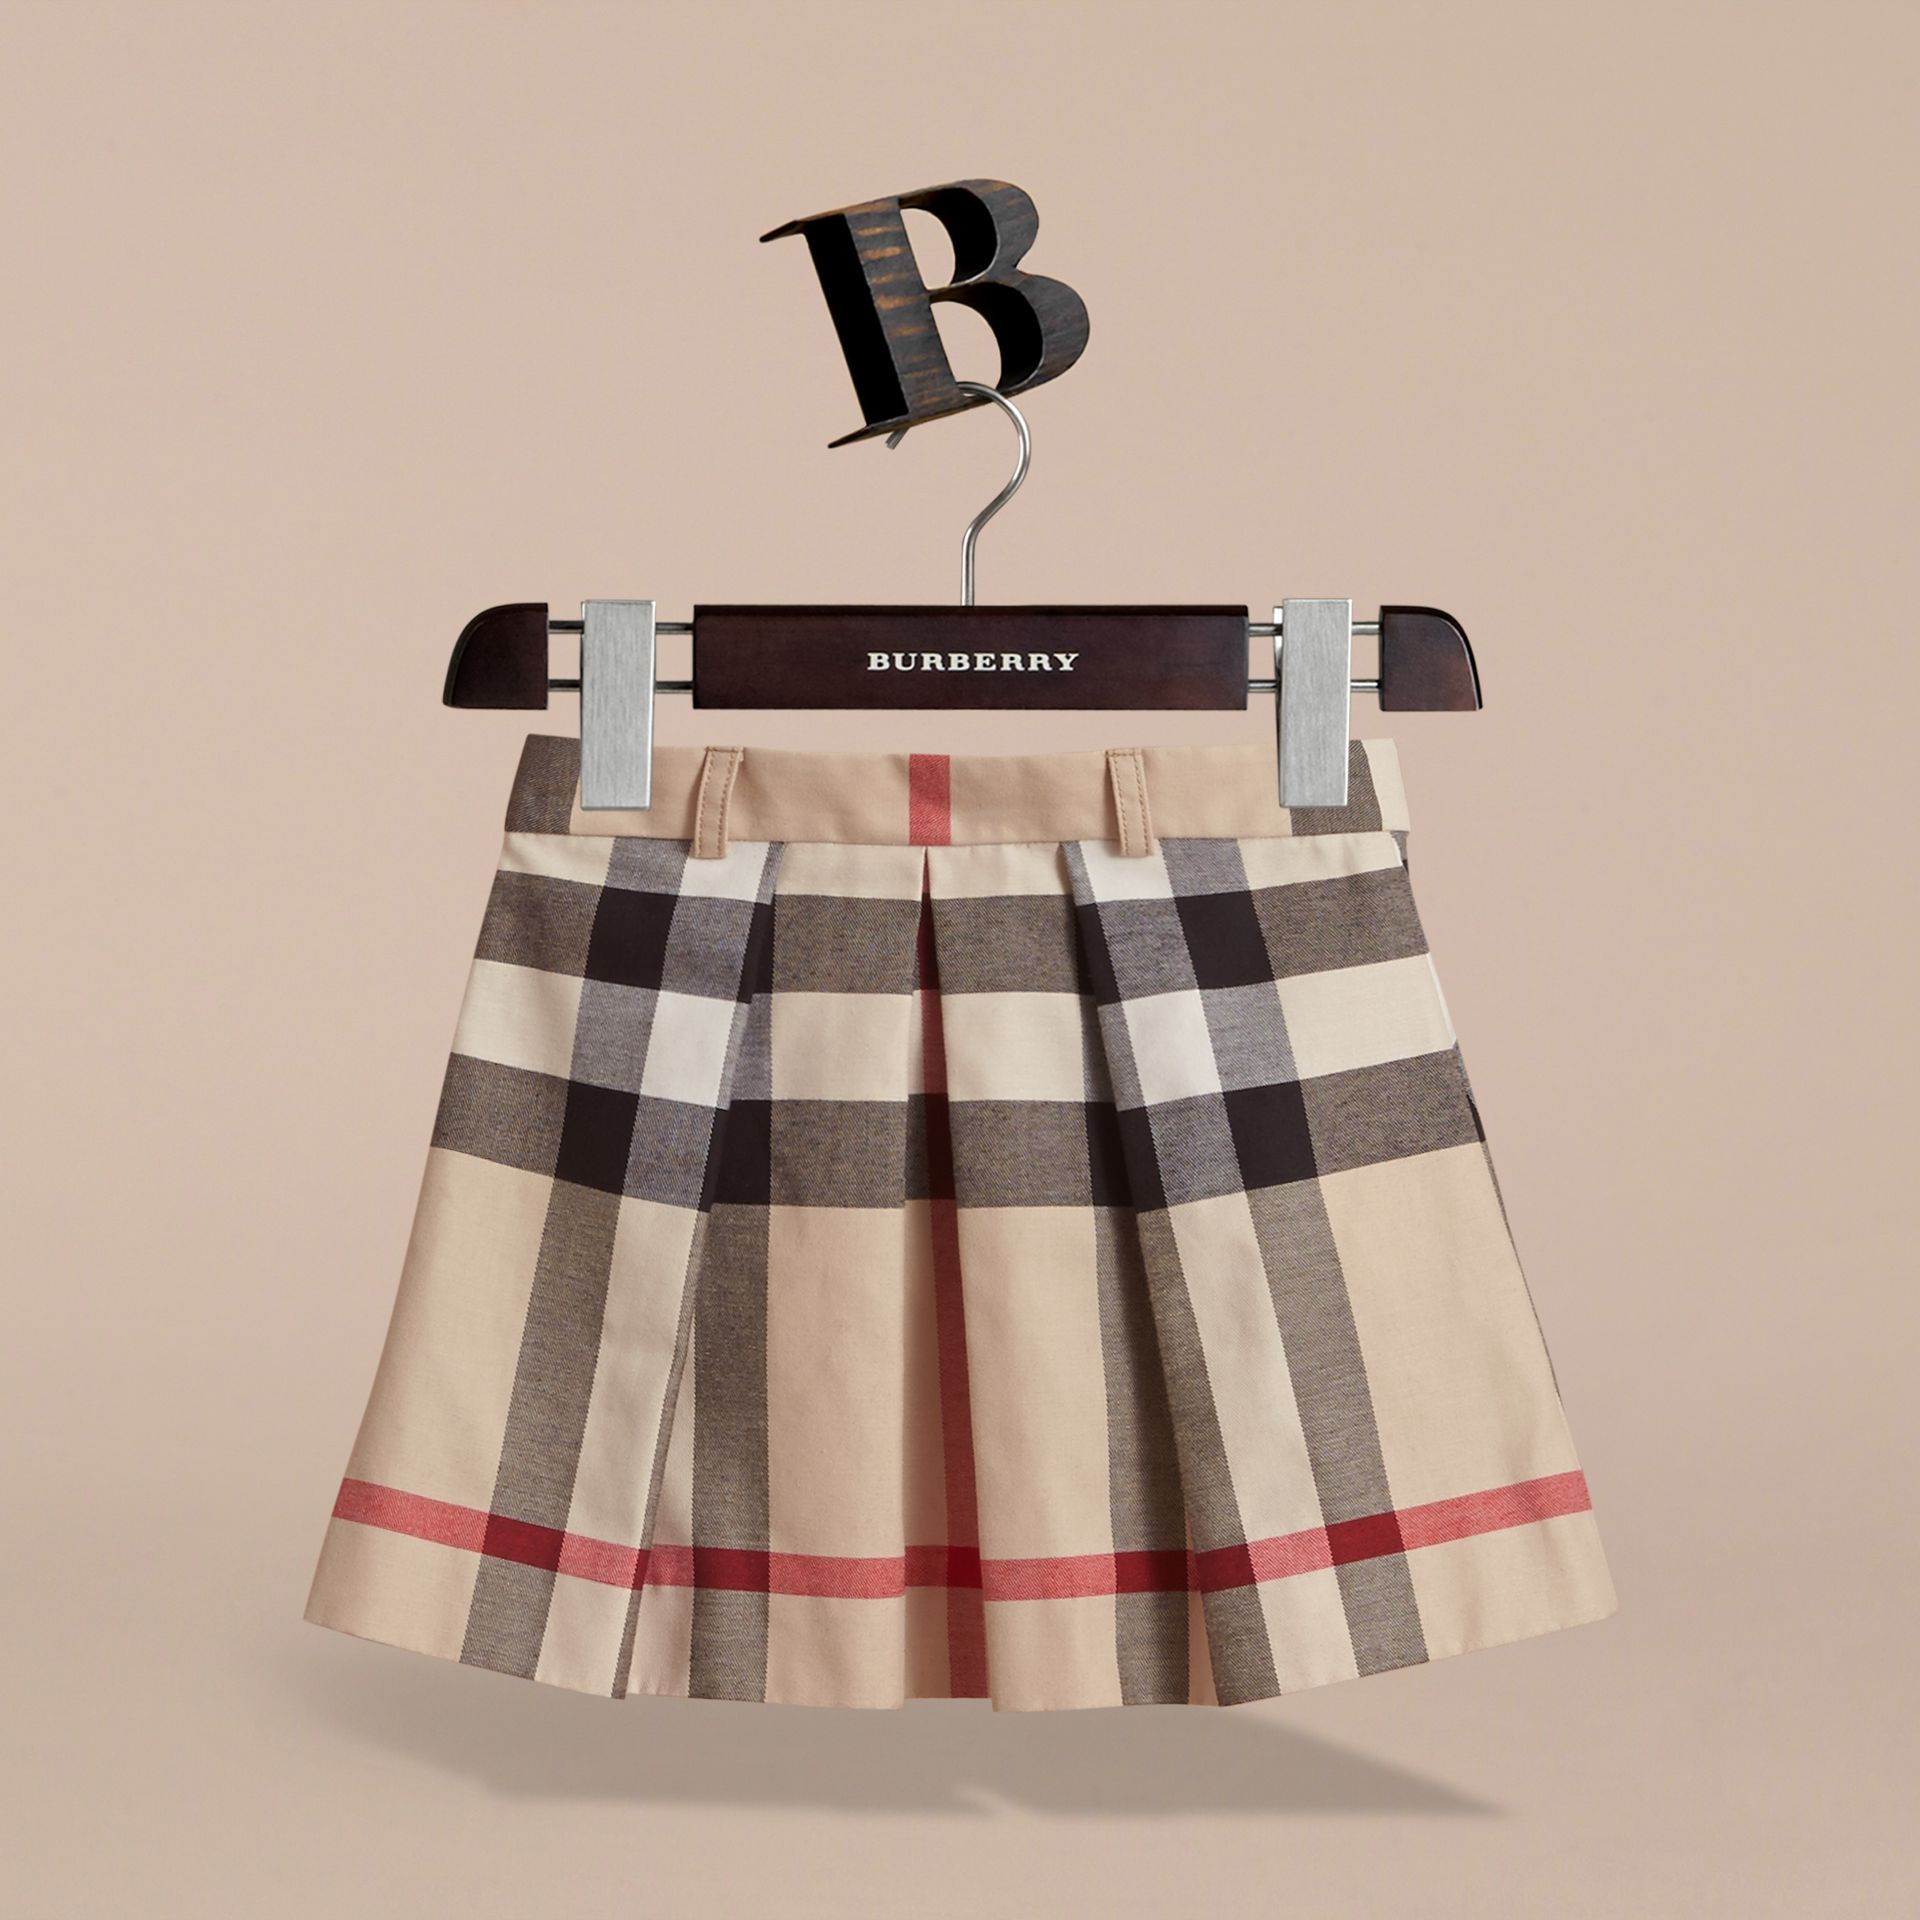 Jupe plissée en coton à motif check (Pierre) - Fille | Burberry - photo de la galerie 3